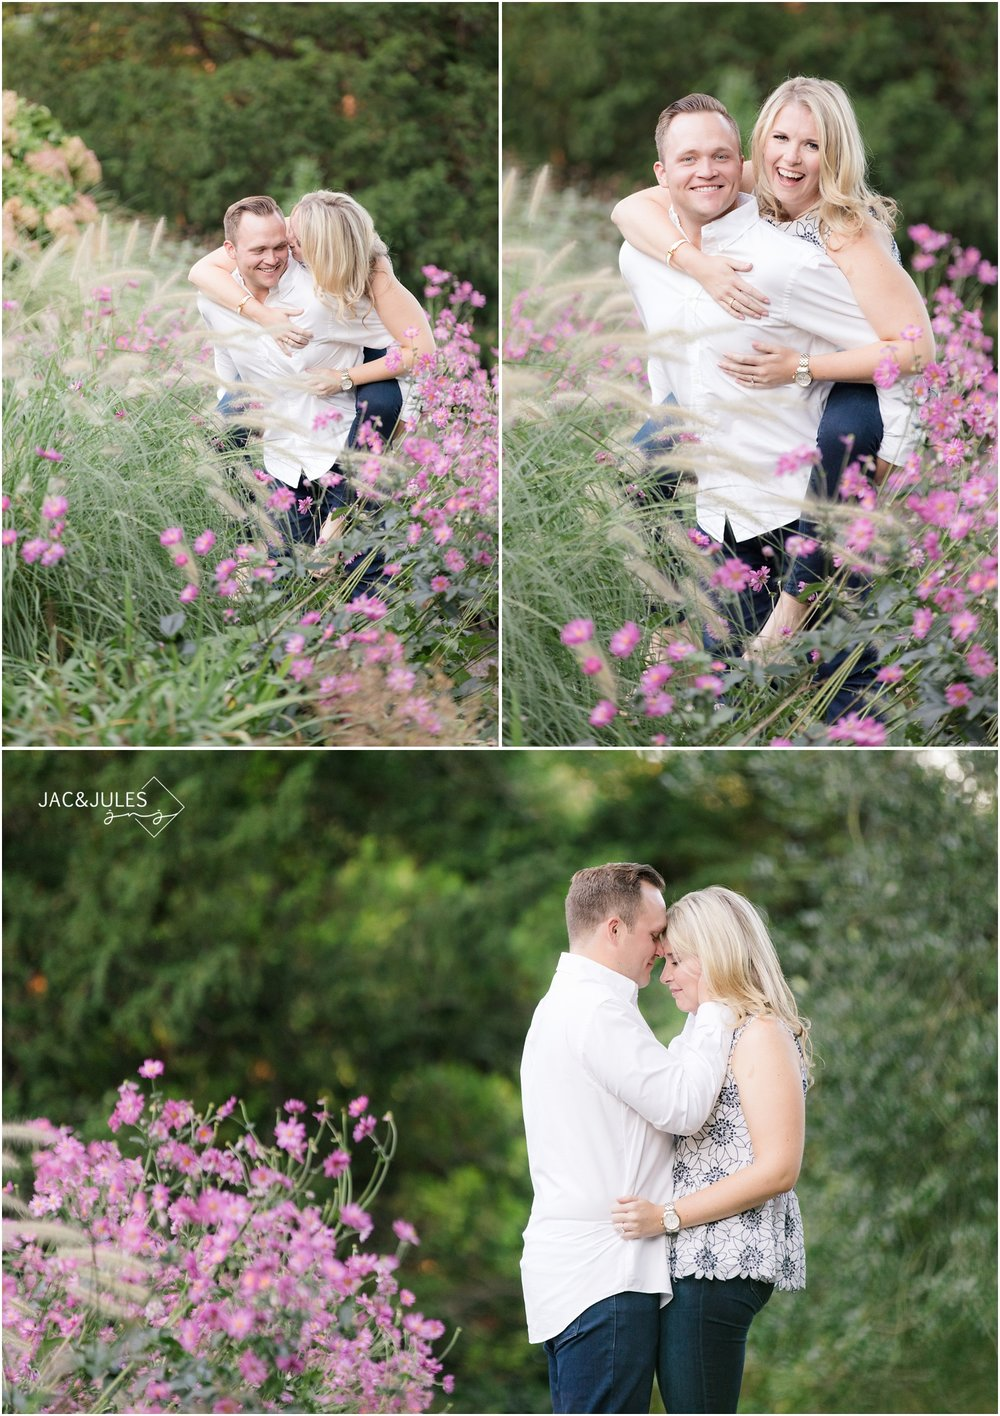 pretty romantic fun Engagement photos at Van Vleck House and Gardens in Montclair, NJ.